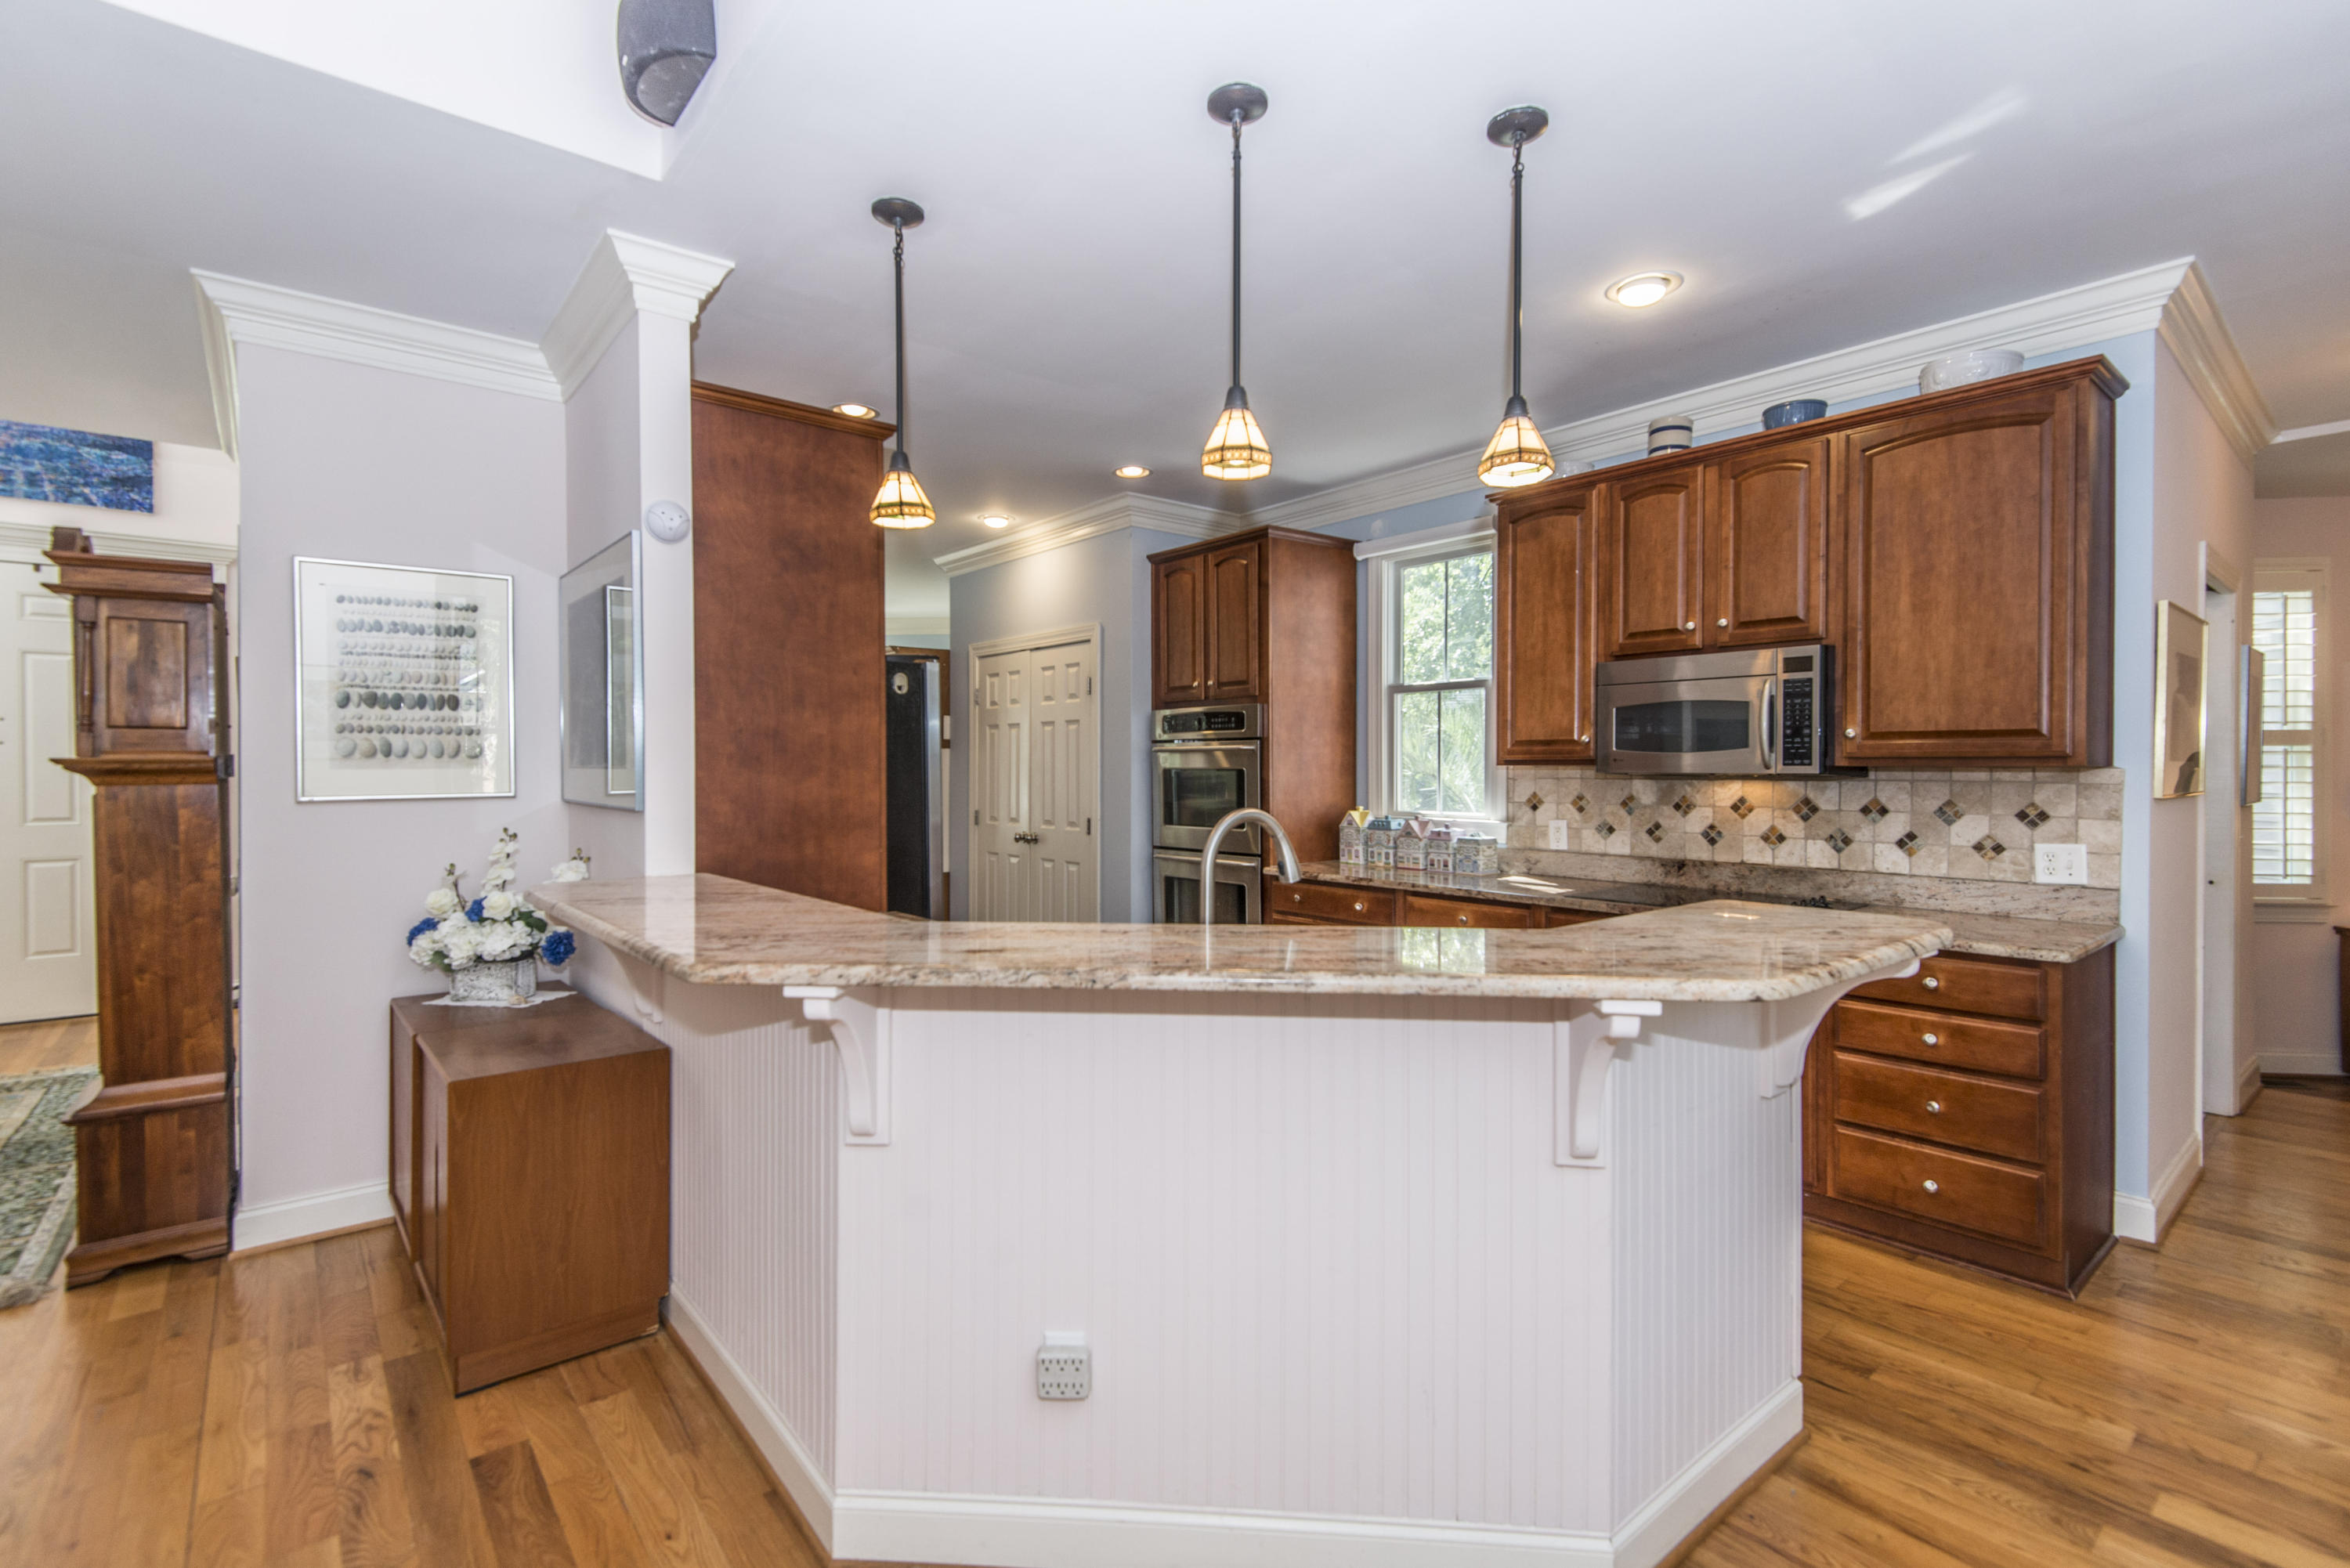 The Villages In St Johns Woods Homes For Sale - 4087 Amy, Johns Island, SC - 13